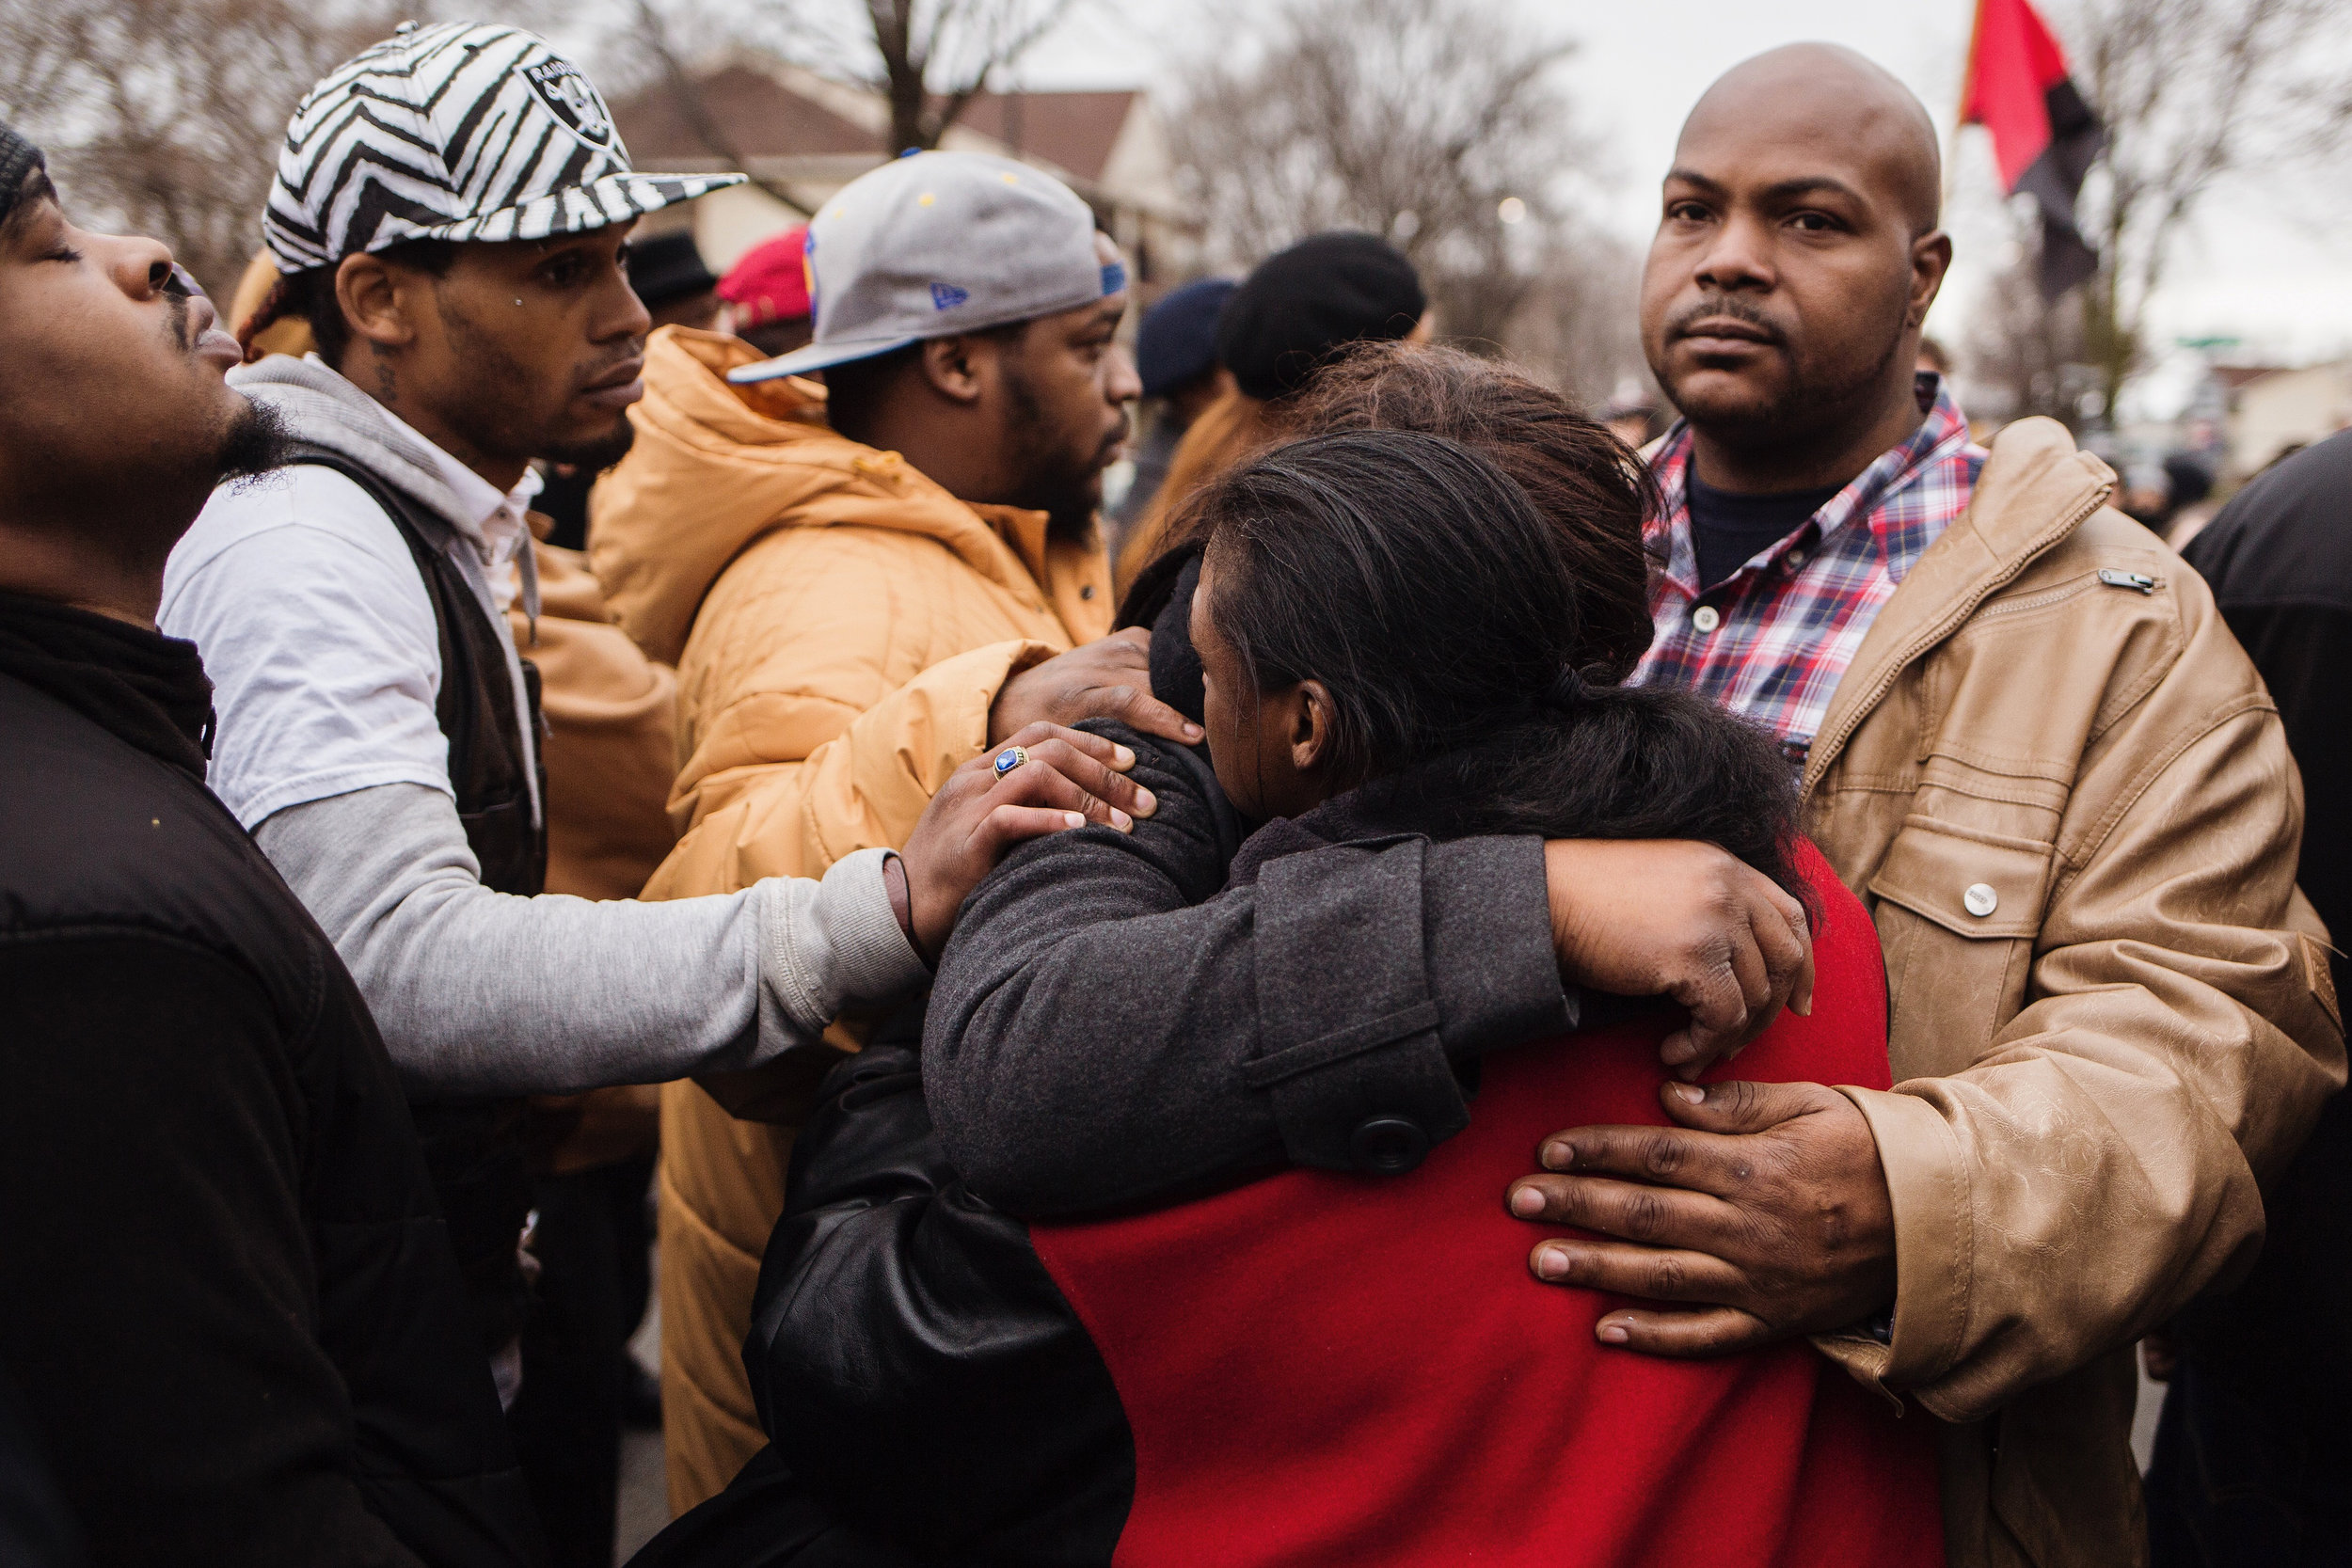 Members of Jamar Clark's family mourn together at the site of his shooting on Plymouth Ave. N on Wednesday, March 30, 2016. While some demonstrators marched to the Hennepin County Government Center, others chose to remain behind at the memorial. The day's demonstrations came after Hennepin County attorney Mike Freeman announced his decision to not charge MPD officers Mark Ringgenberg and Dustin Schwarze, who were involved in Clark's death.